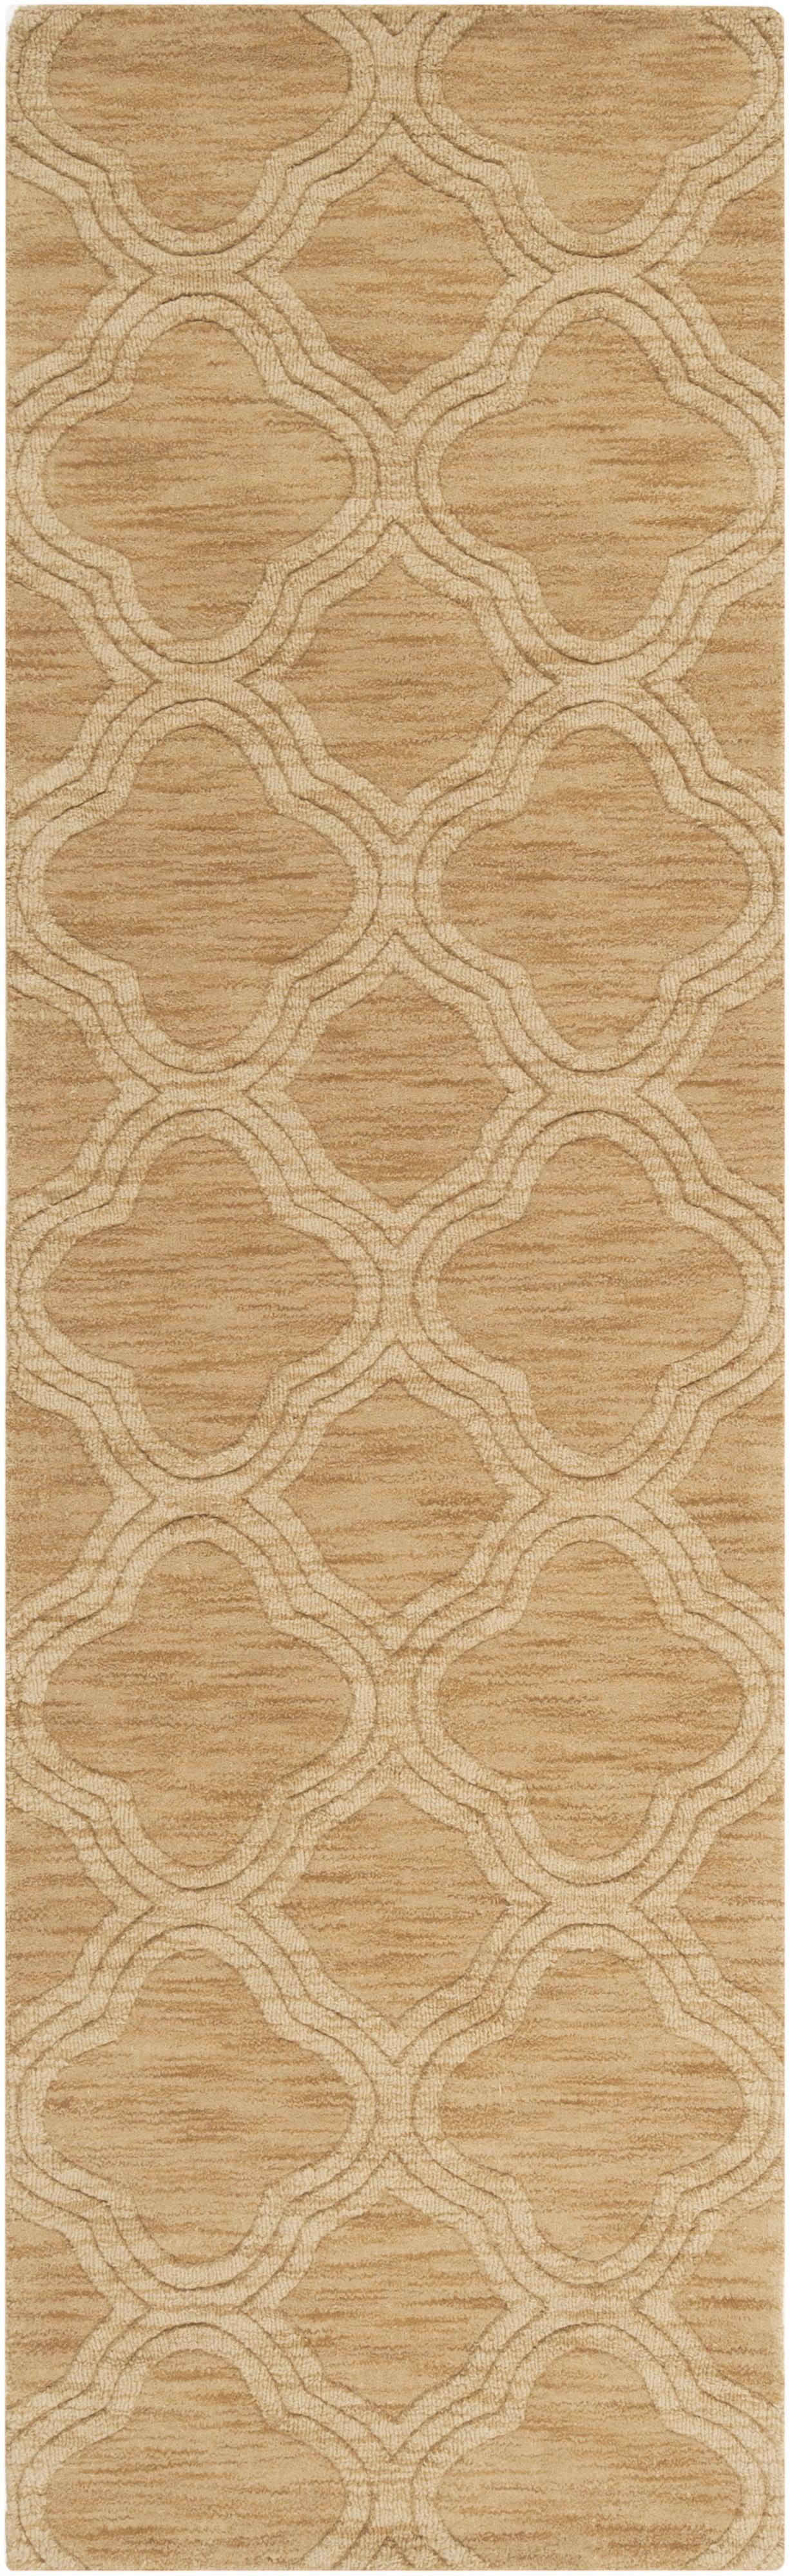 "Surya Rugs Mystique 2'6"" x 8' - Item Number: M418-268"